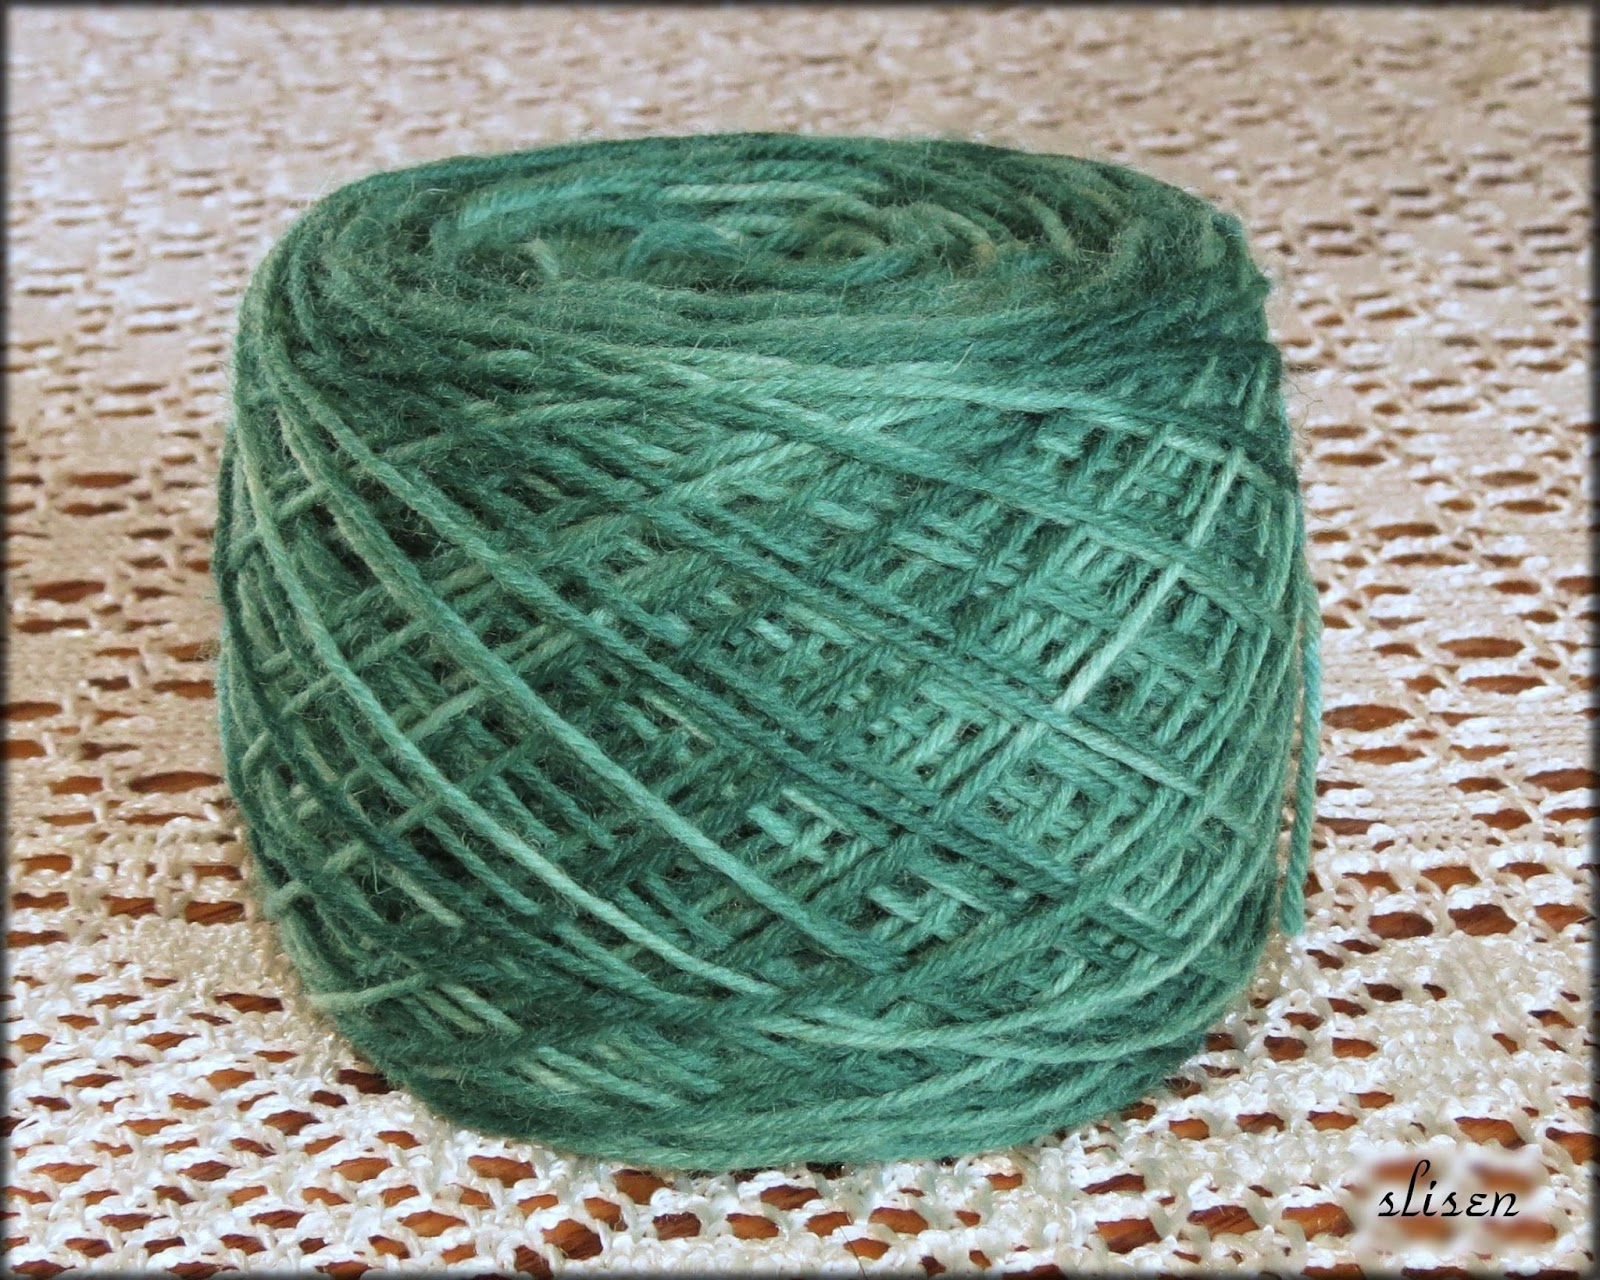 Variegated Yarn : Slisens Happy Place: Paint Dyeing a Skein for Variegated Yarn